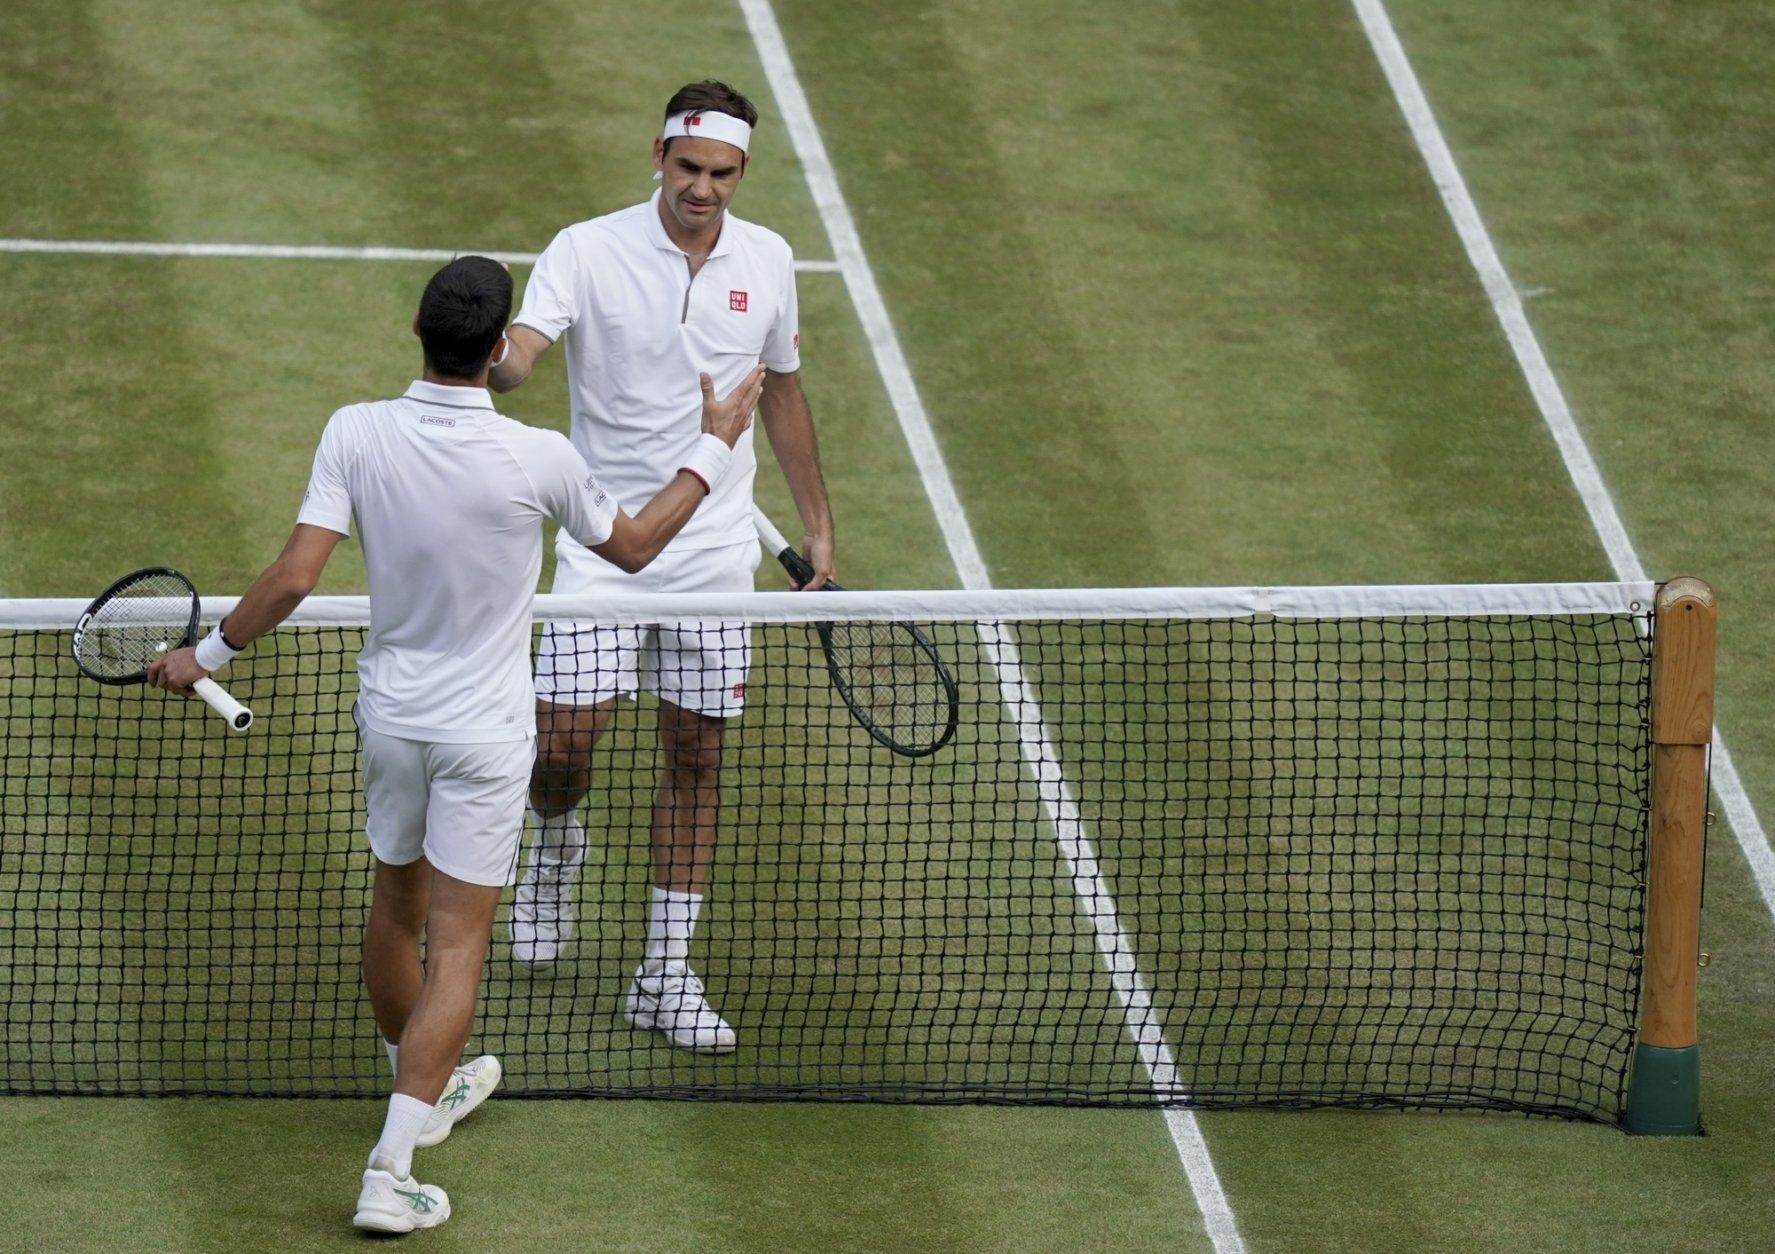 Serbia's Novak Djokovic, left, shakes hands with Switzerland's Roger Federer after he defeats him during the men's singles final match of the Wimbledon Tennis Championships in London, Sunday, July 14, 2019. (Will Oliver/Pool Photo via AP)